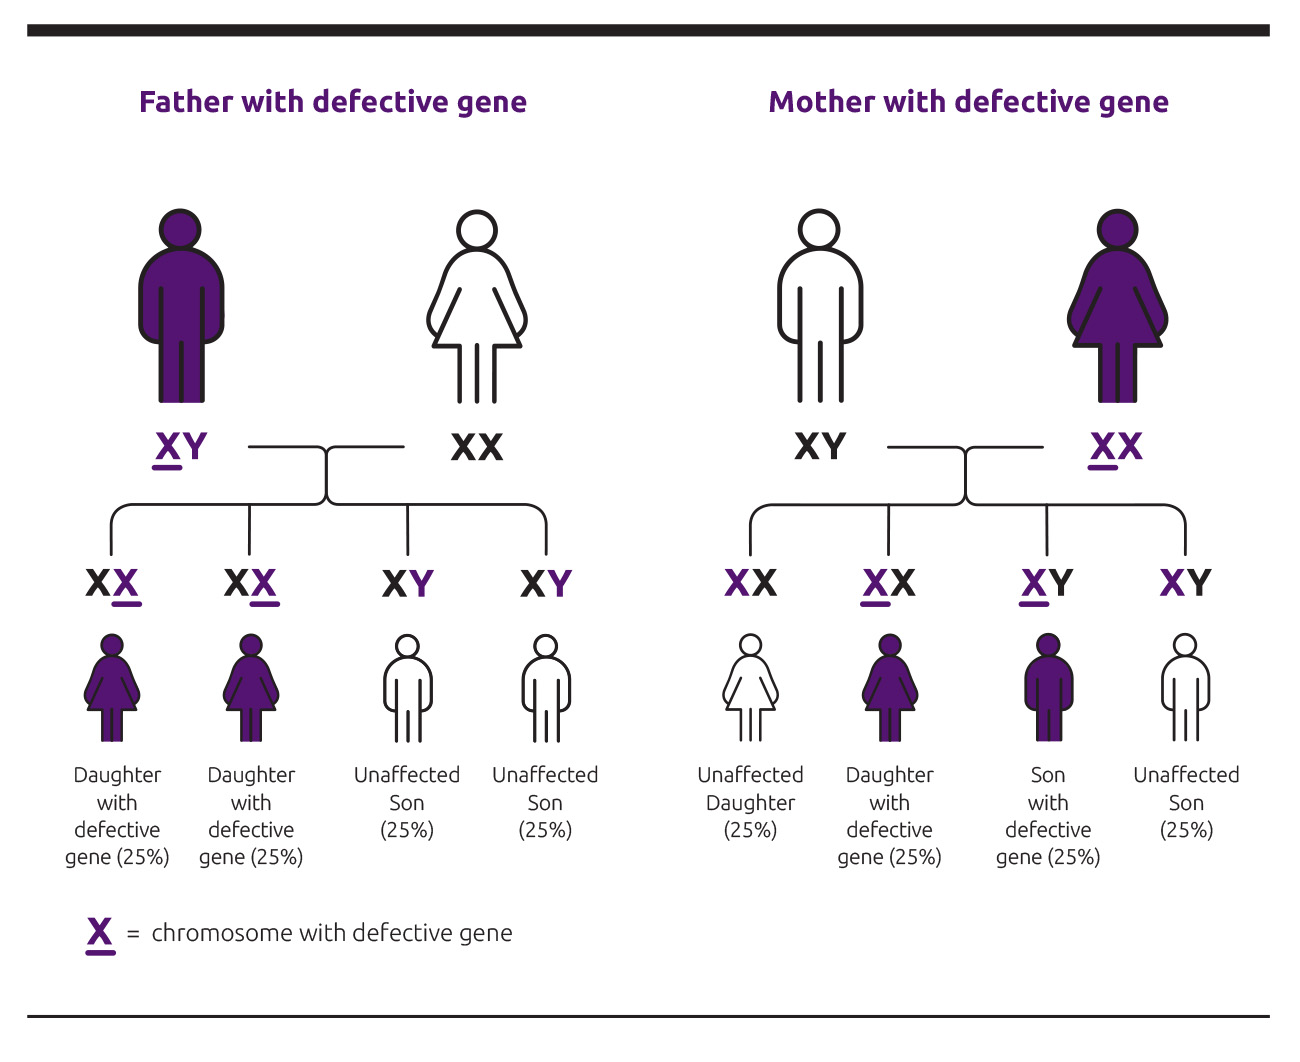 Fabry disease inheritance pattern by Idorsia